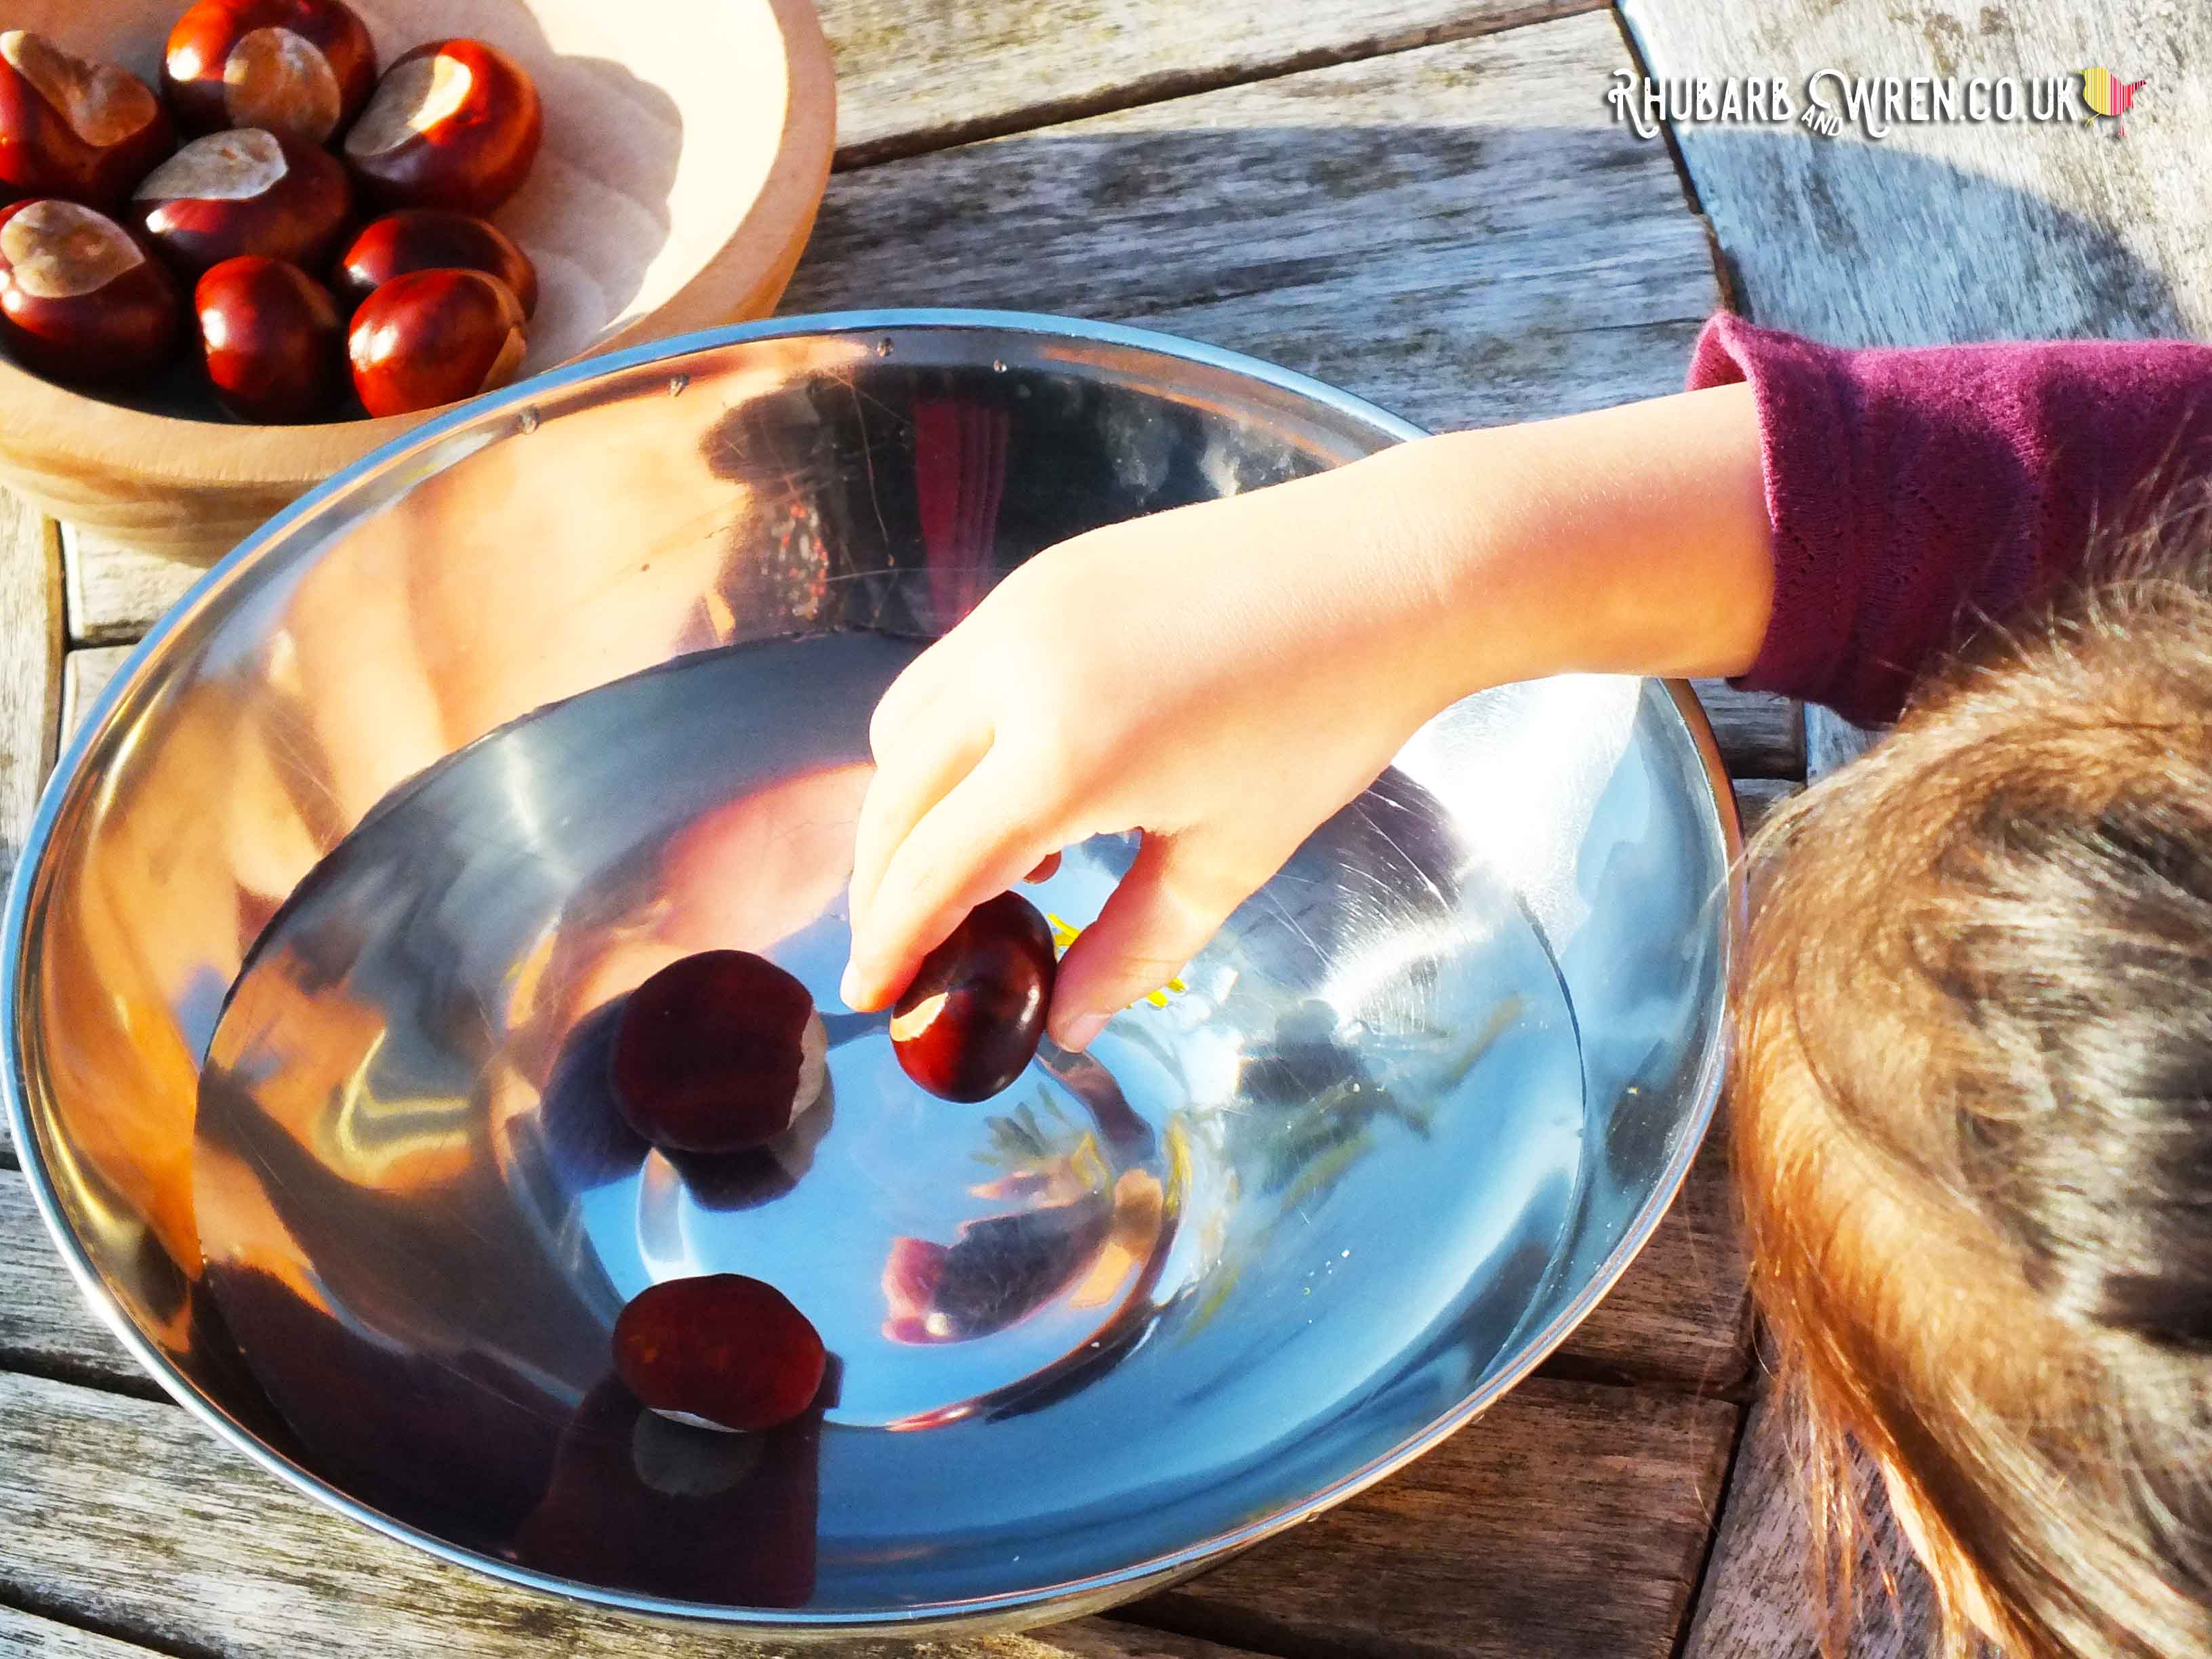 Girl dropping conker into bowl of water